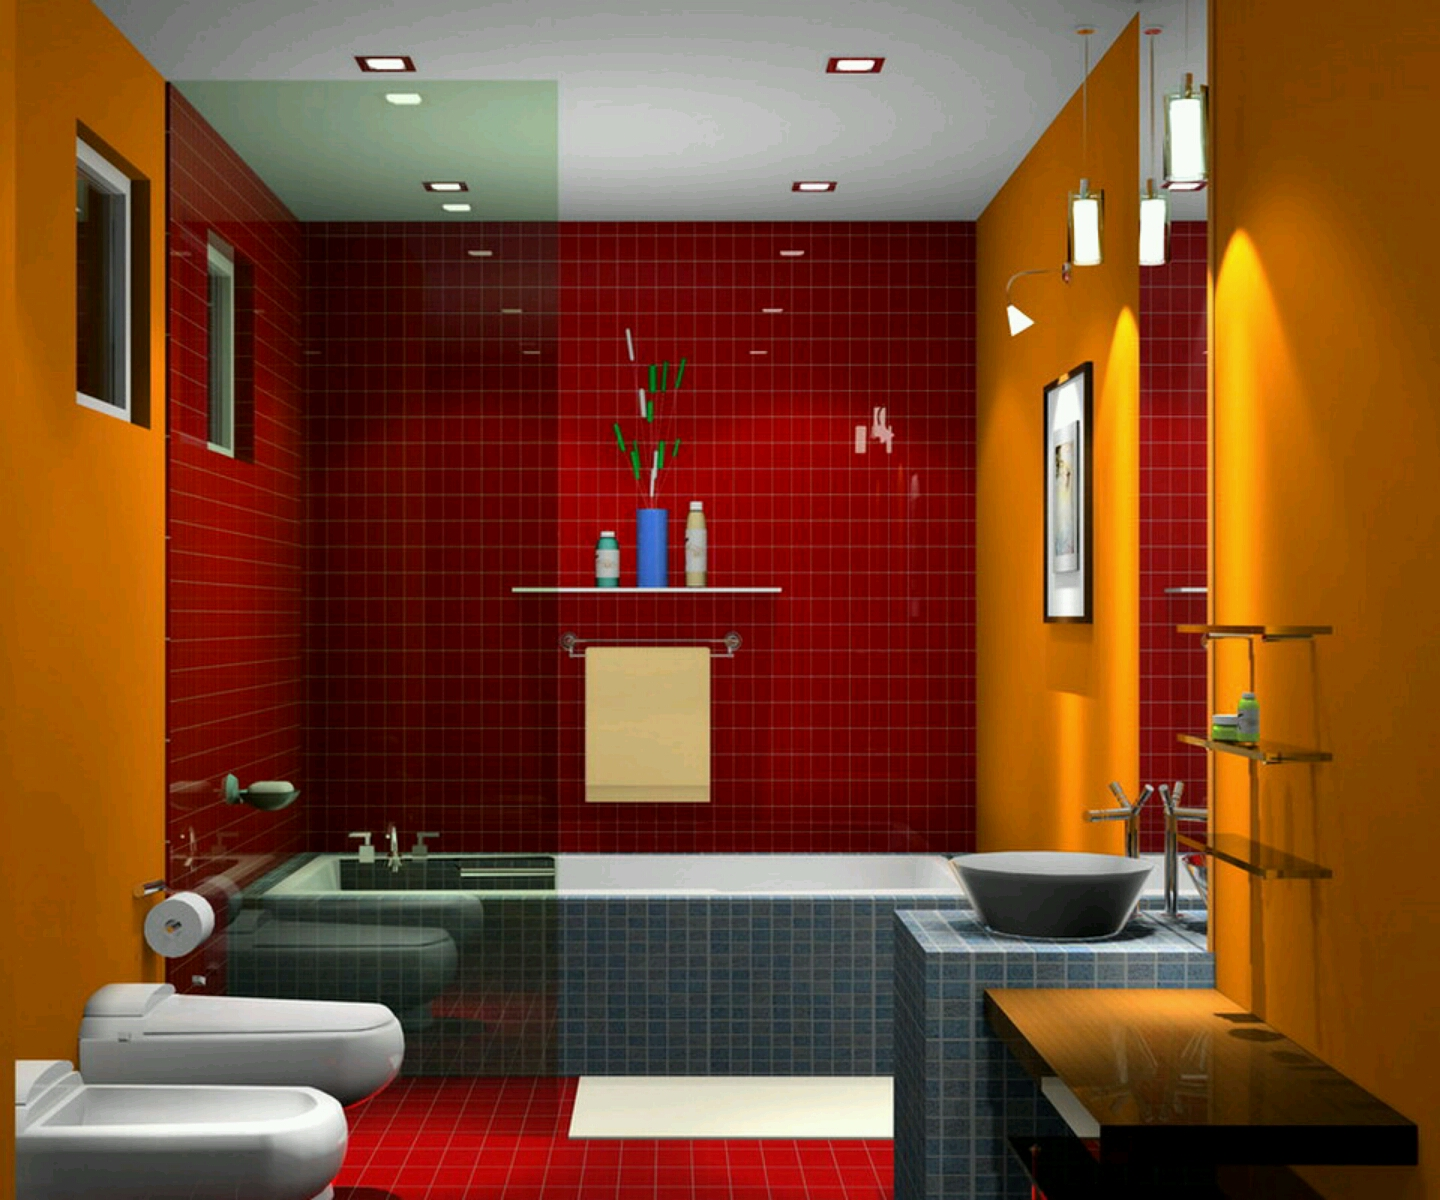 New home designs latest luxury bathrooms designs ideas for Bathroom interior design kerala